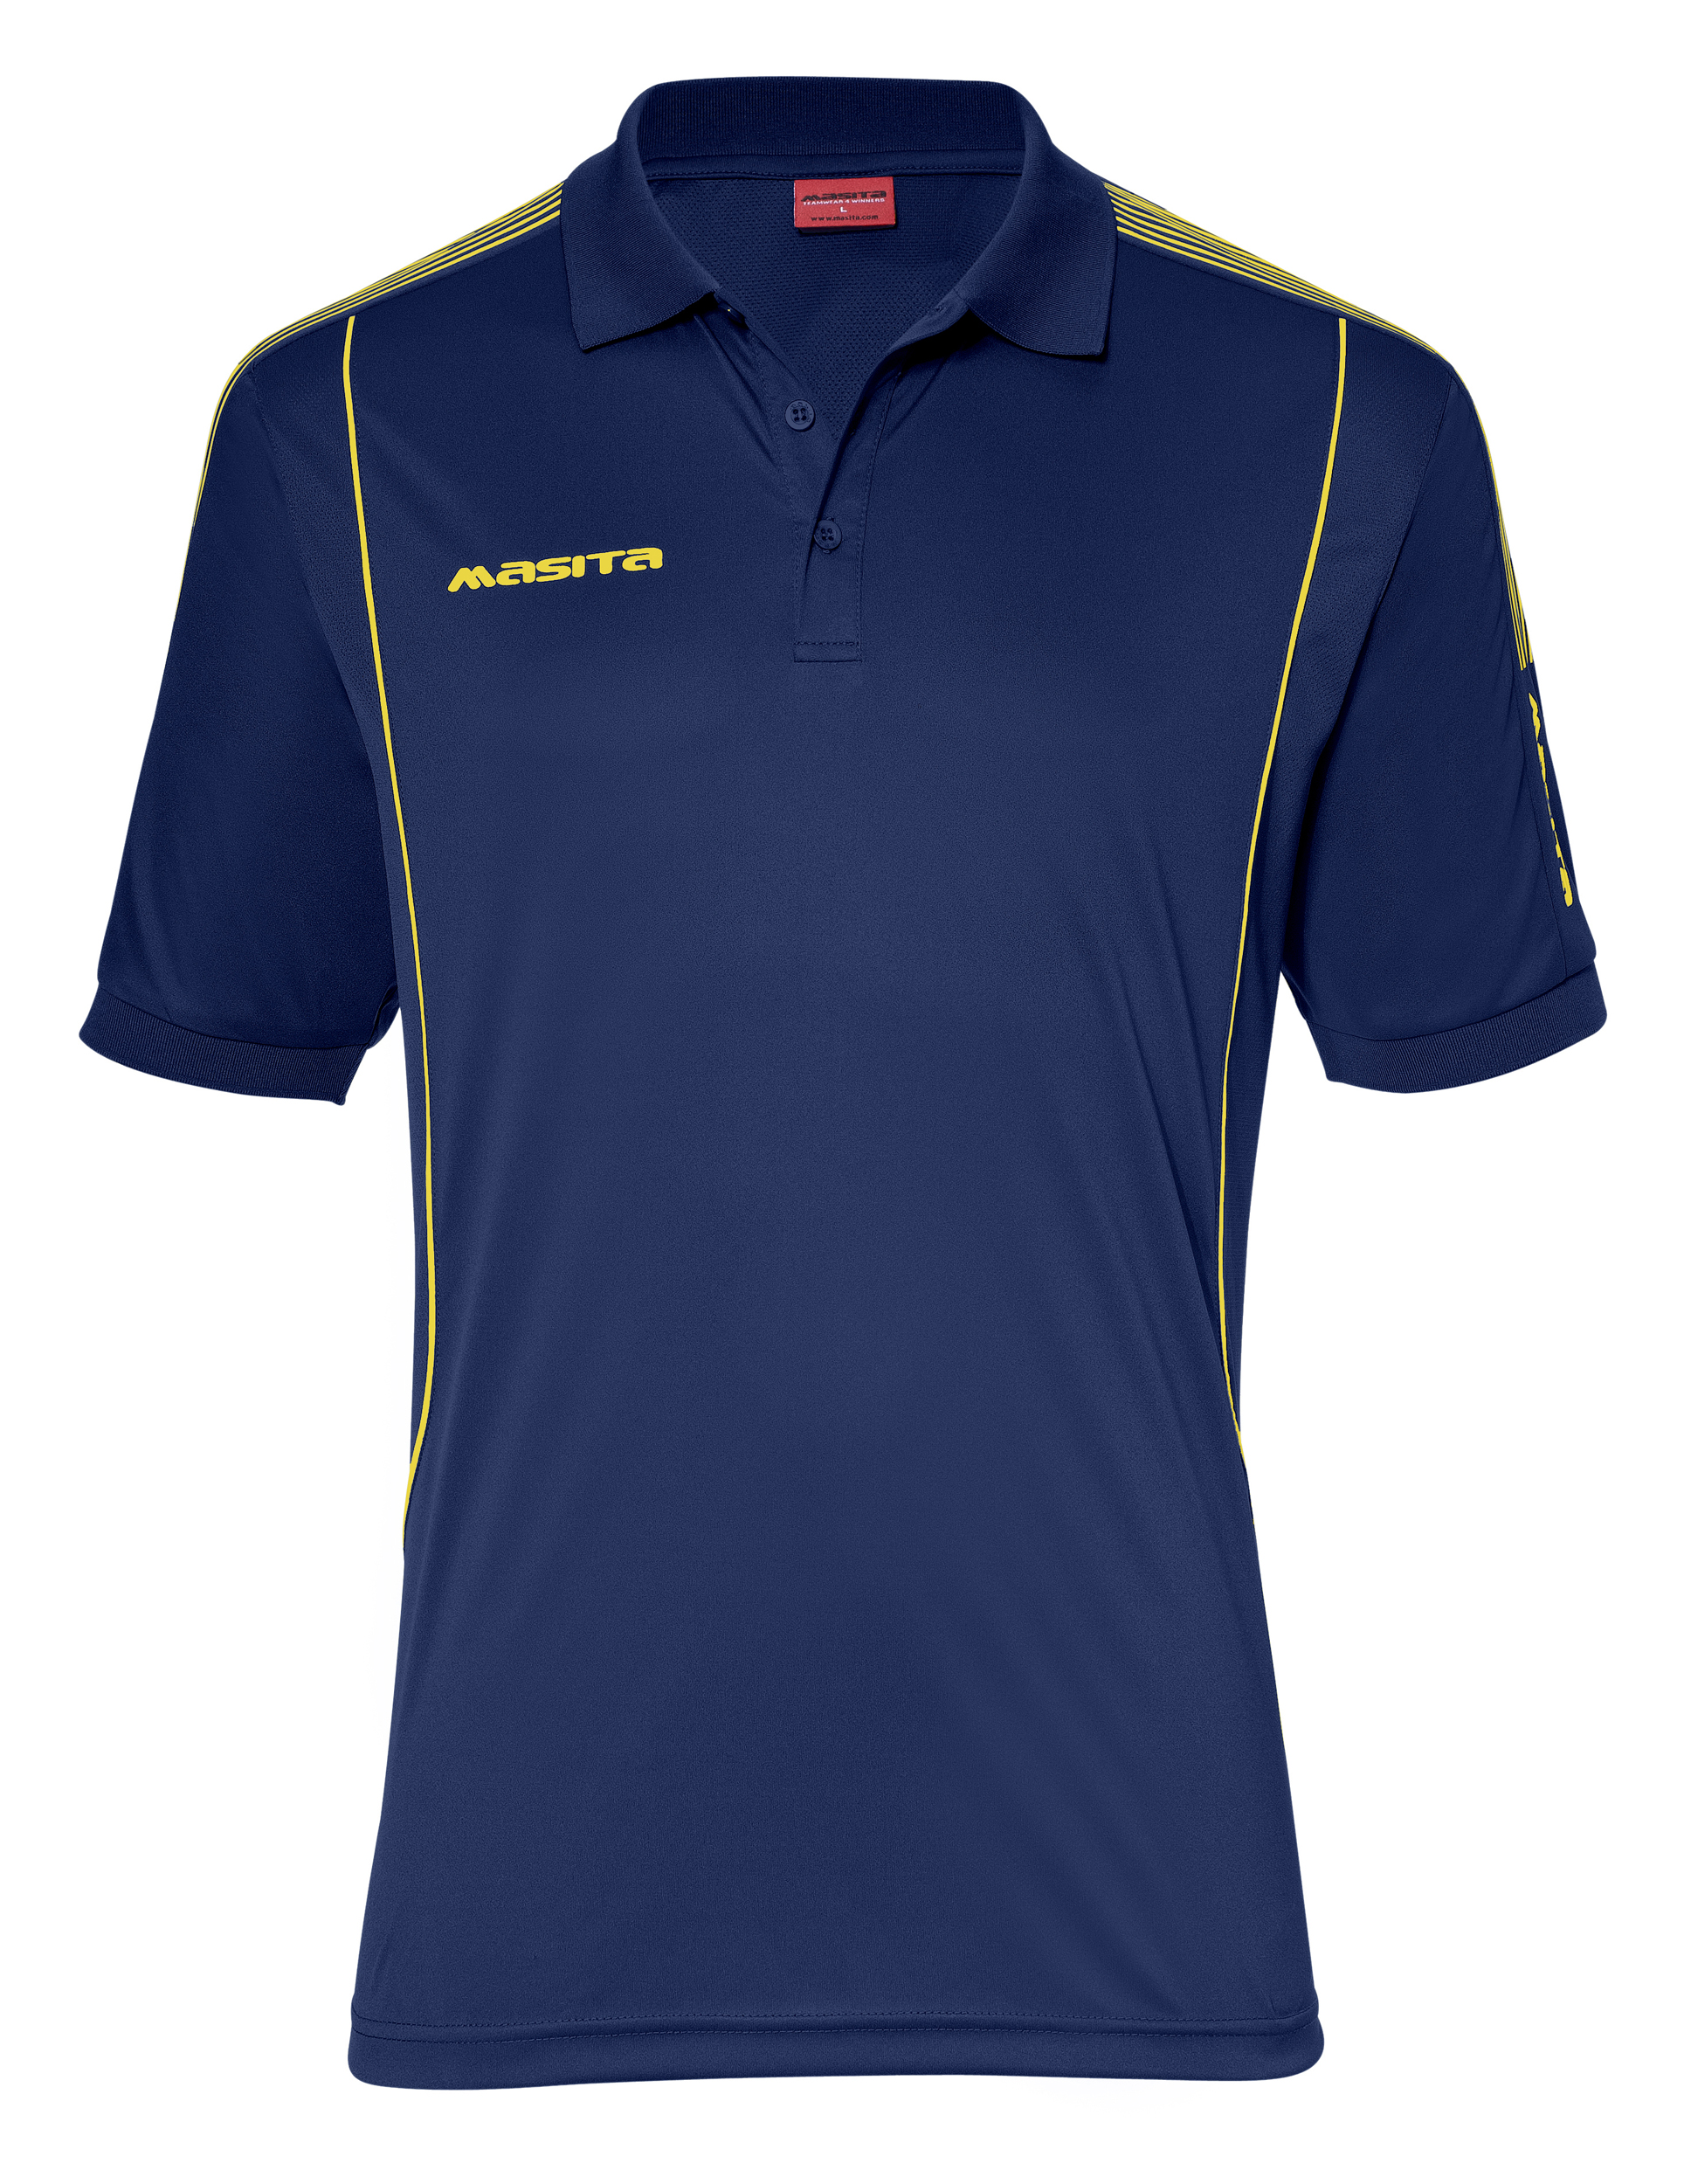 Polo Barca  Navy Blue / Yellow